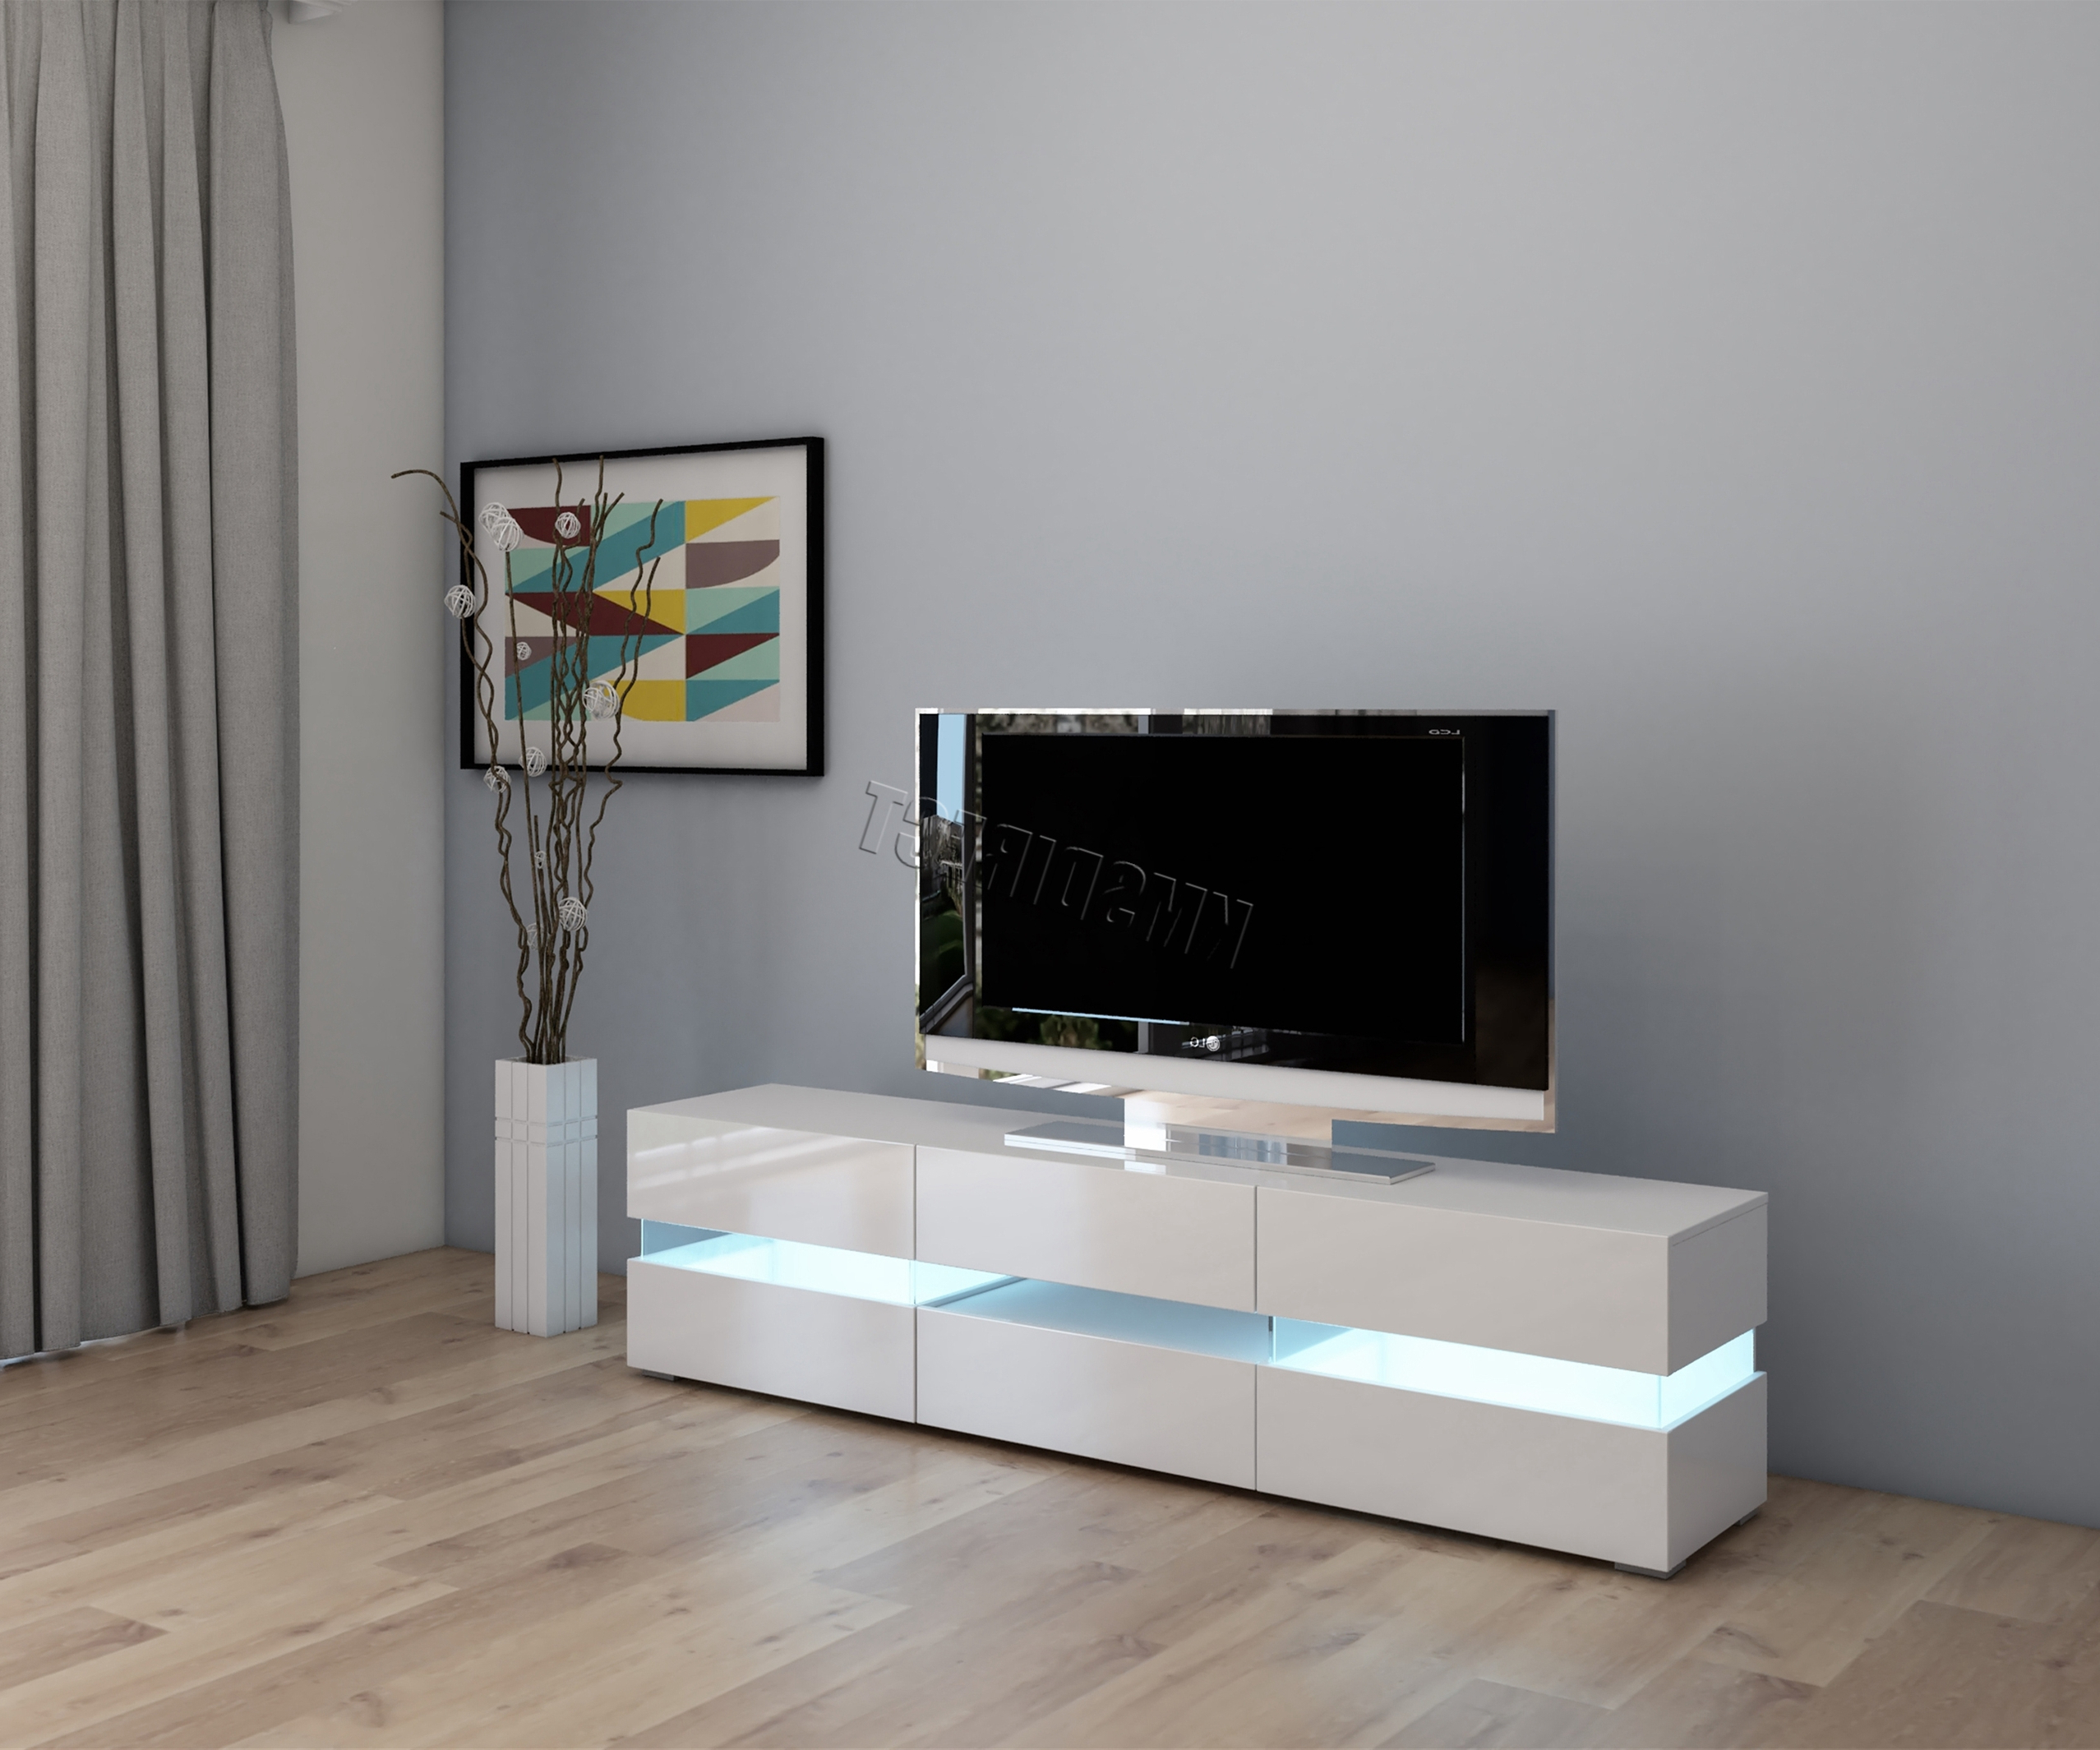 Led Tv Cabinets For Most Current Cosmetic Damaged Modern High Gloss Matt Tv Cabinet Unit Stand White (View 7 of 20)